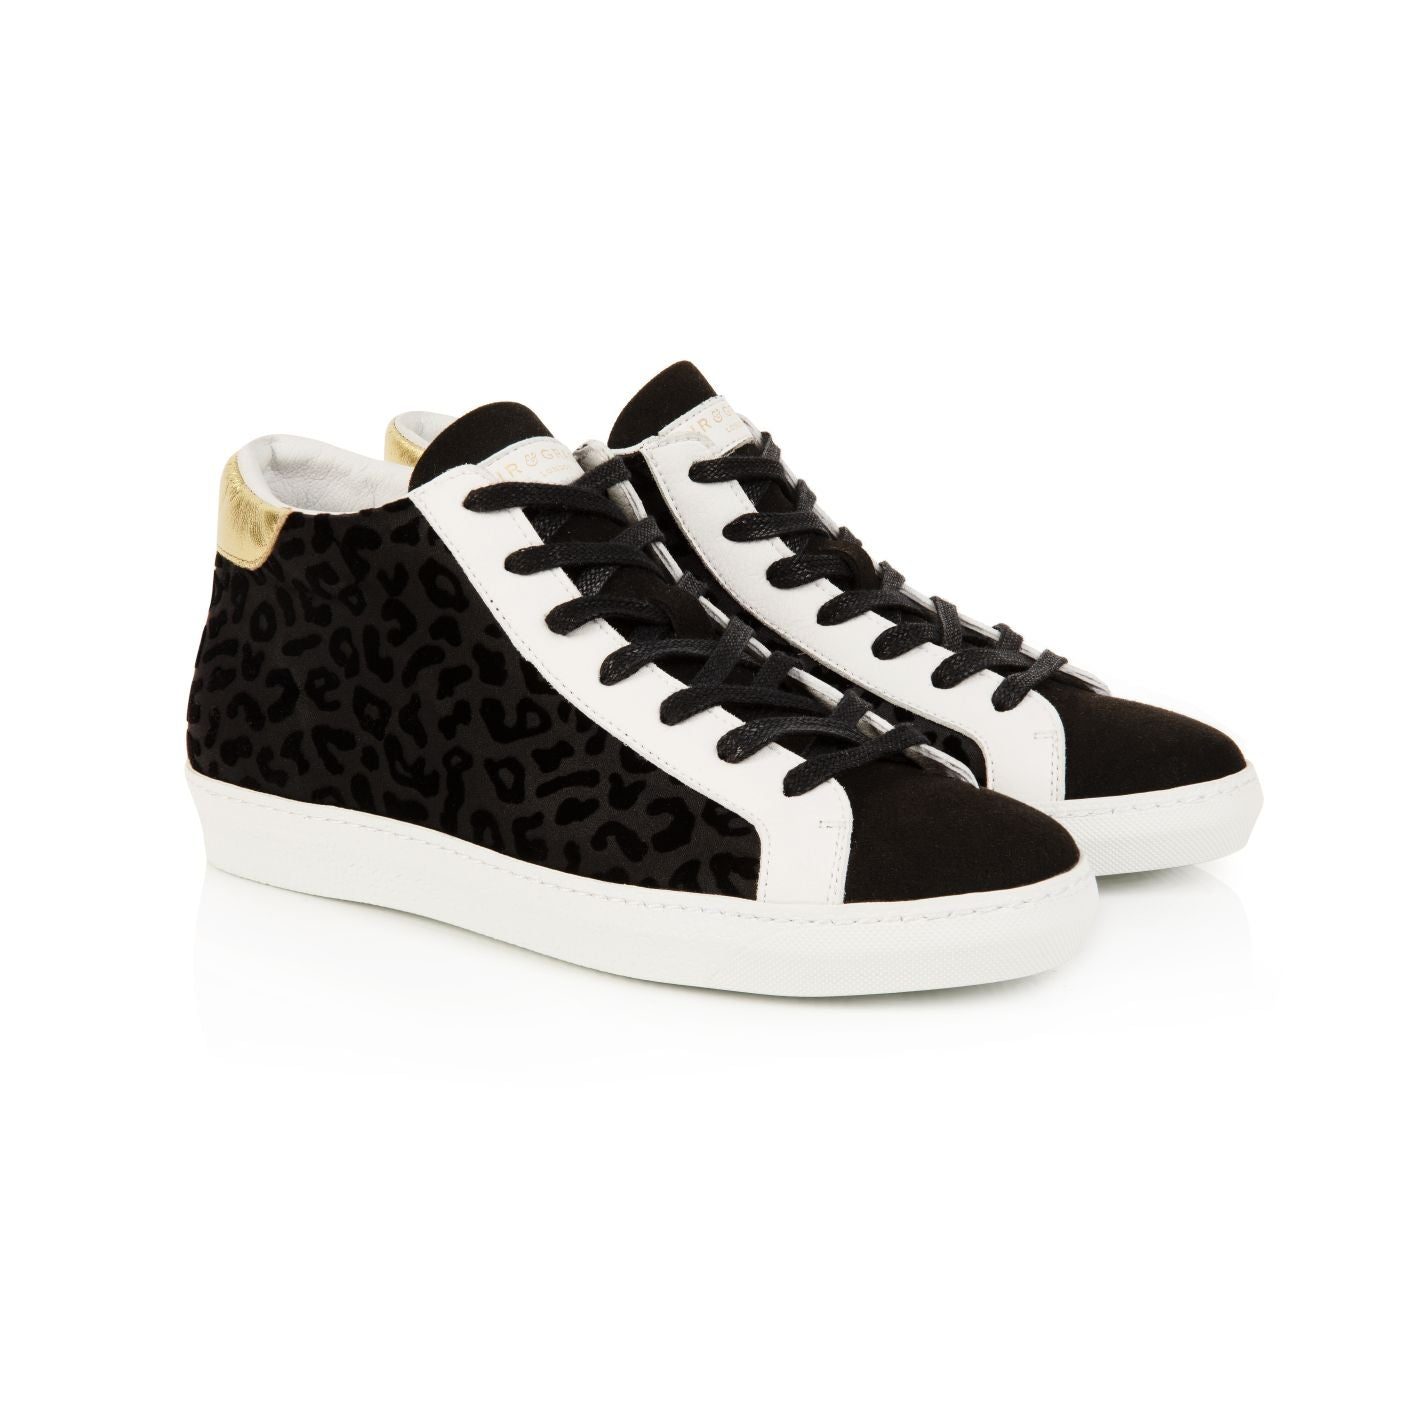 ALTO: BLACK LEOPARD HIGH TOP TRAINERS